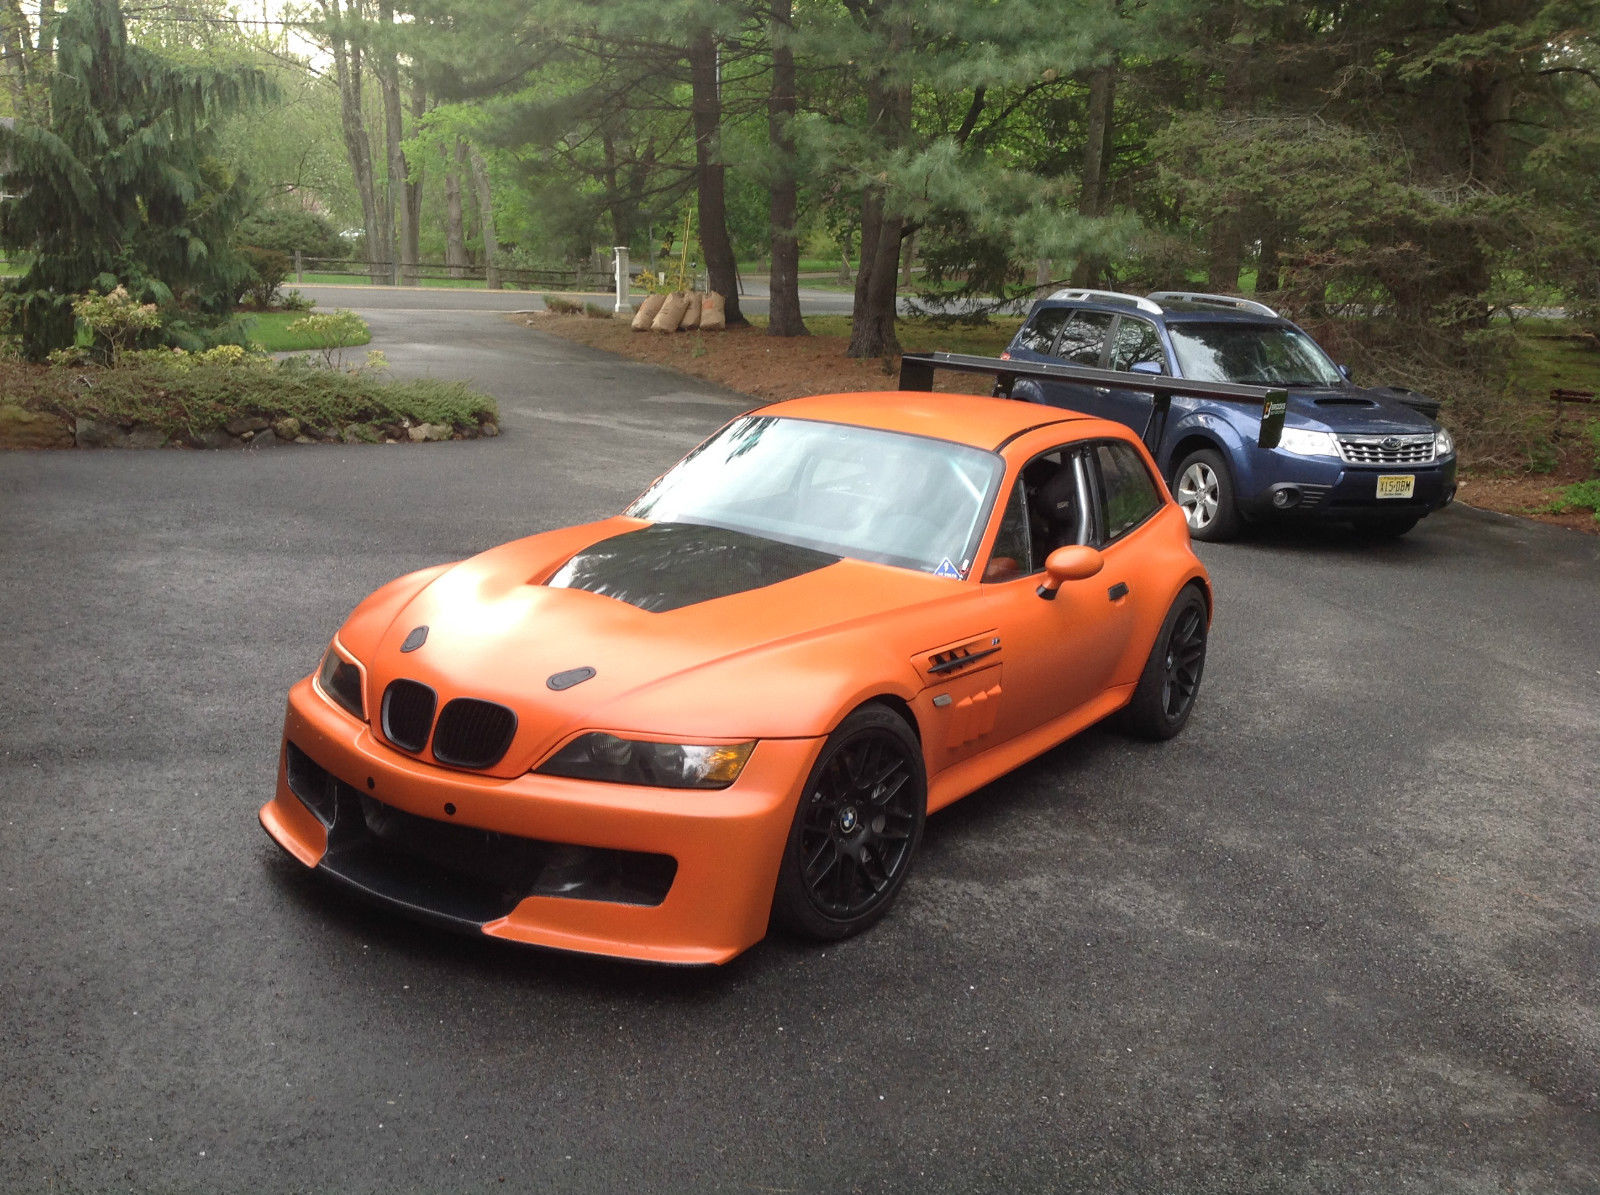 Bagged Bmw Z3 M Coupe Shows Us That All Things Have Their Beauty Autoevolution